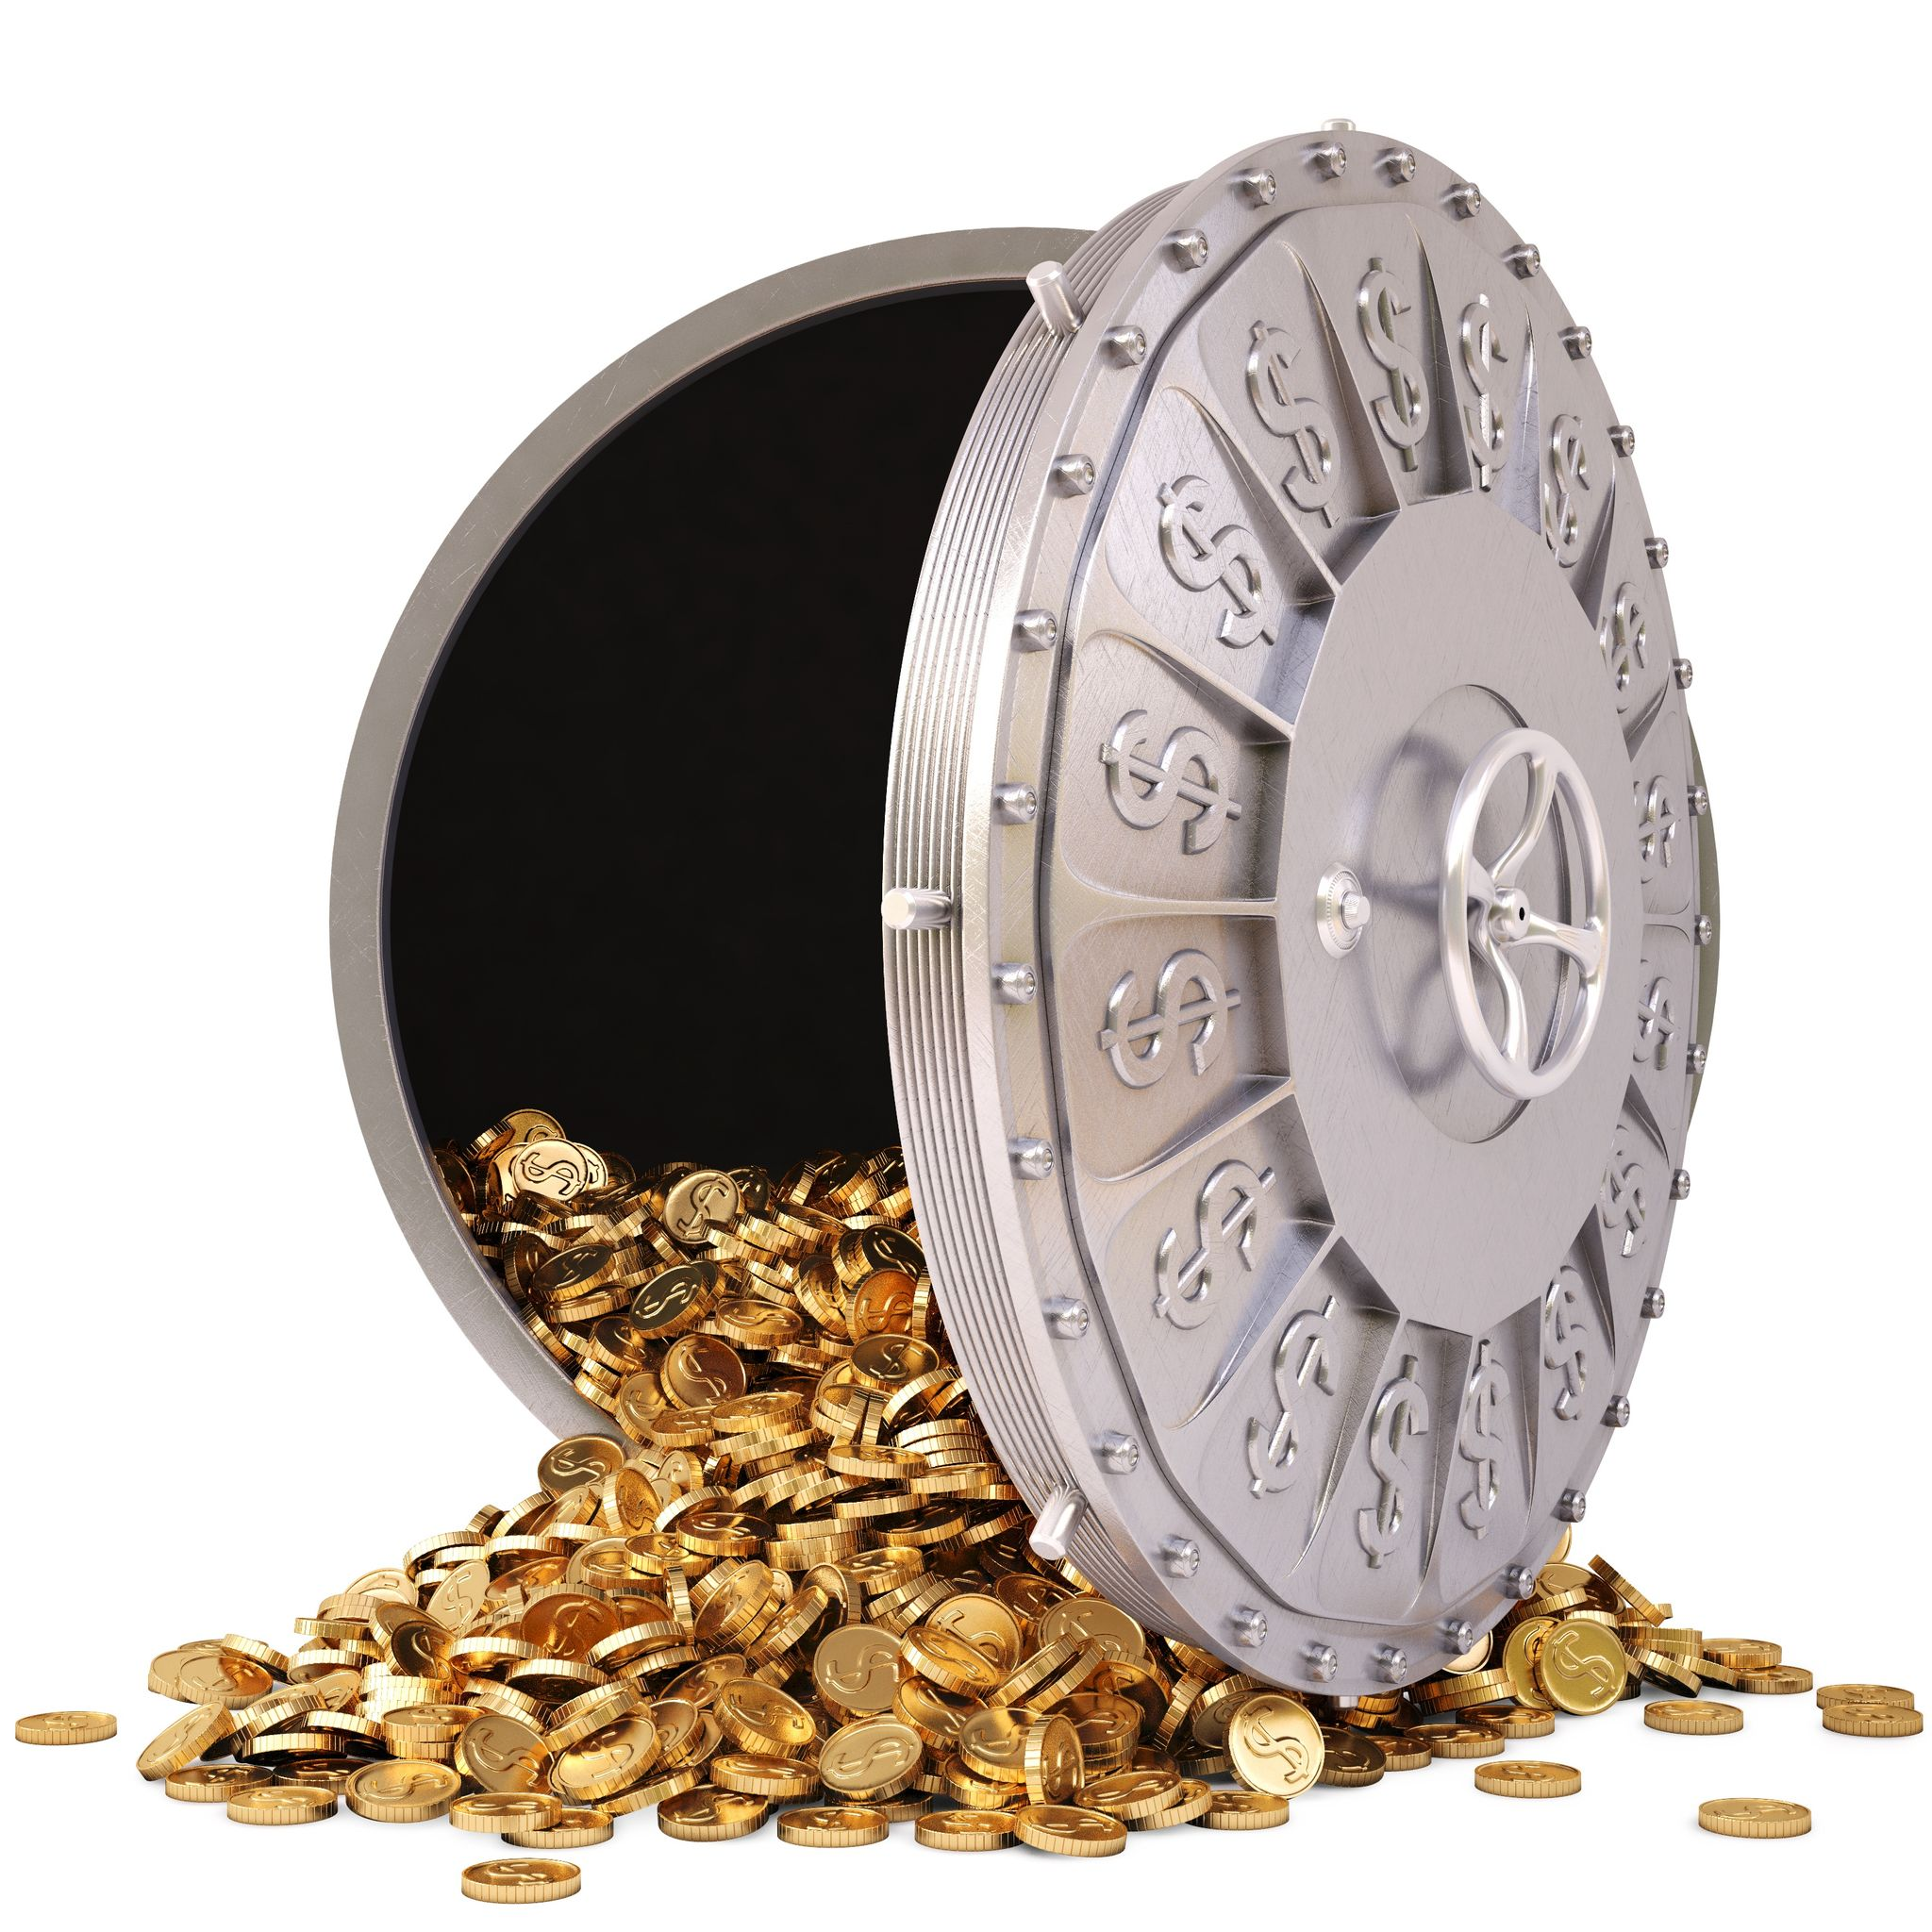 Can You Buy Gold Coins At The Bank?